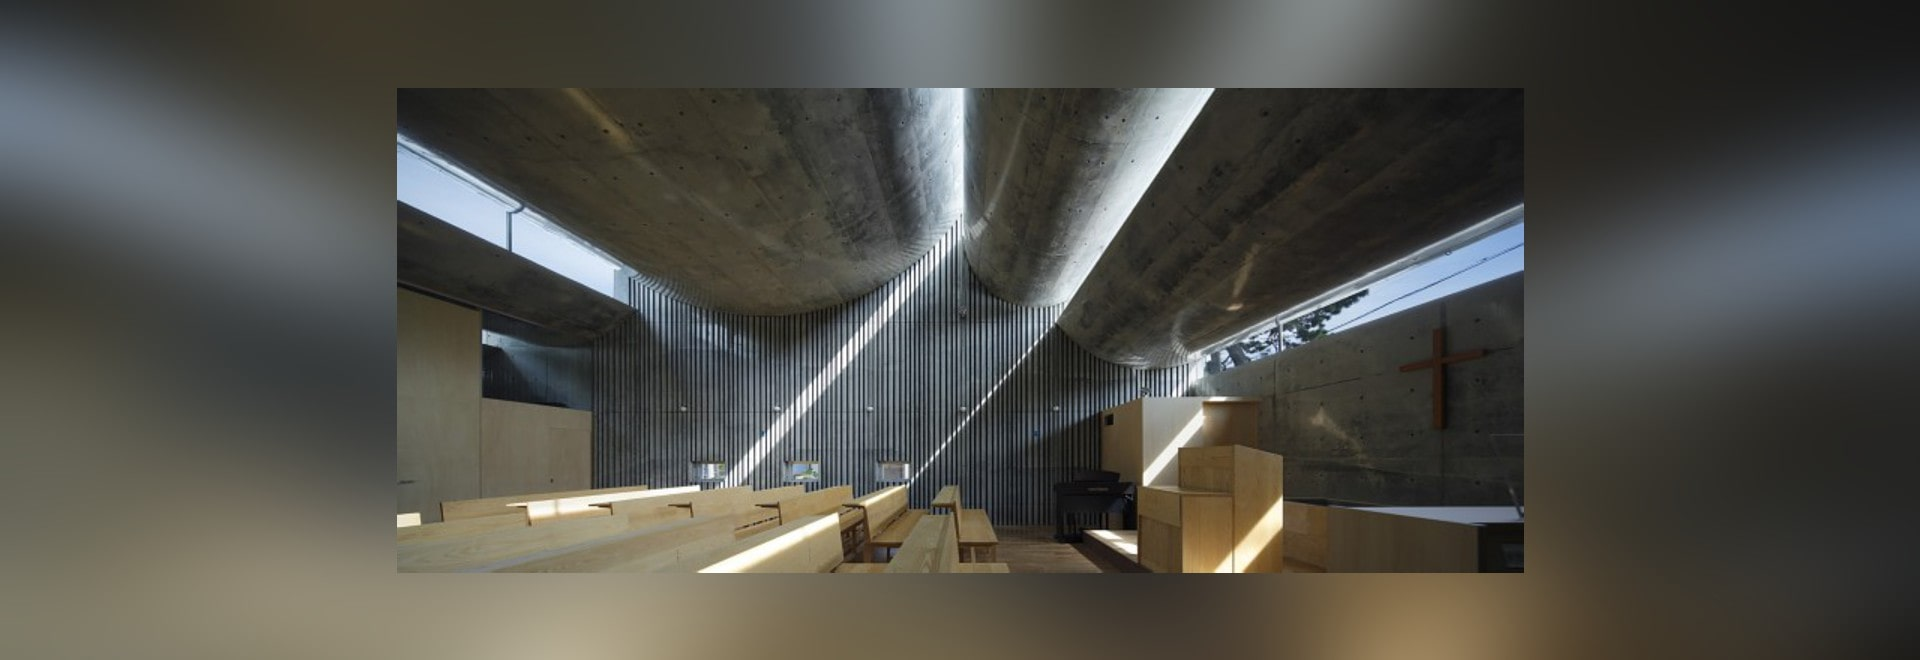 SHONAN CHRIST CHURCH BY TAKESHI HOSAKA